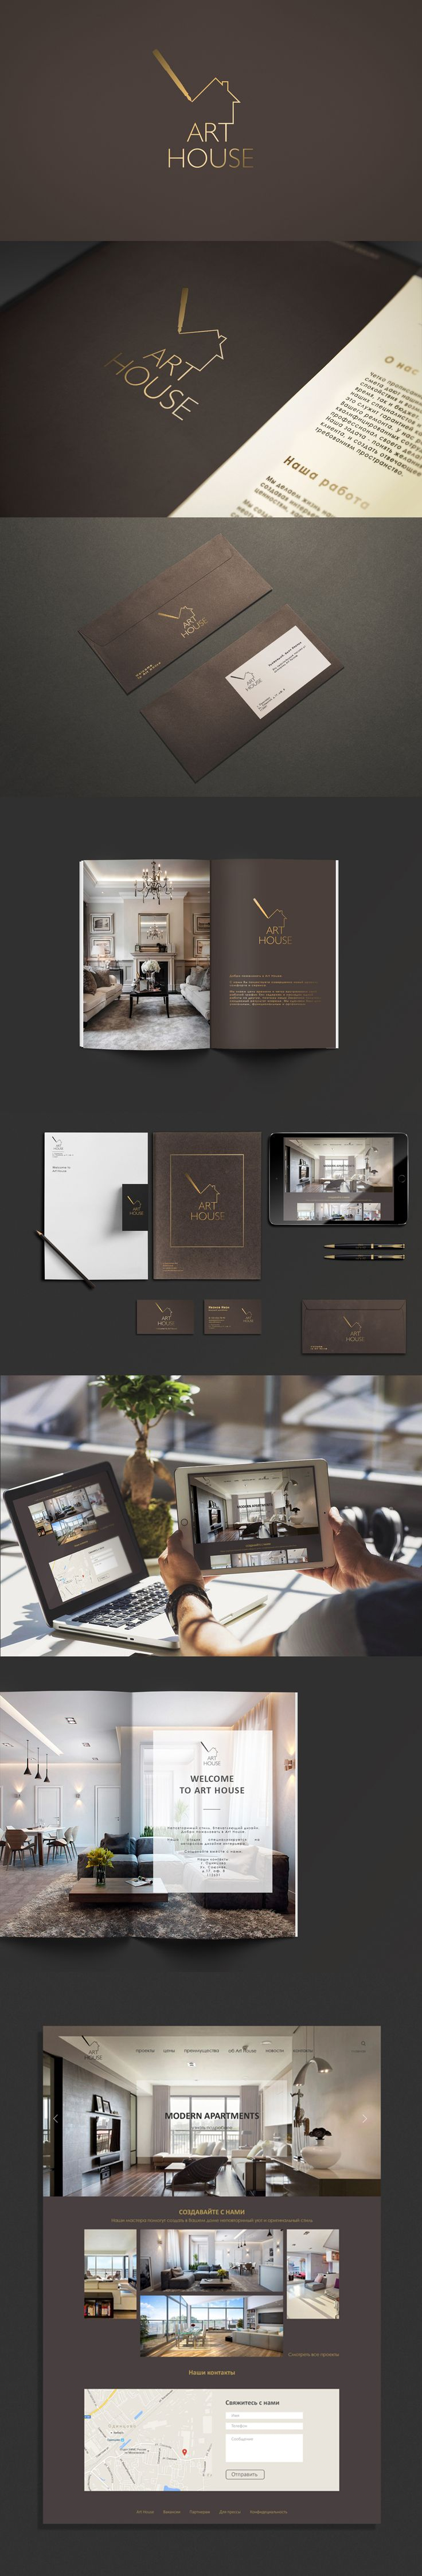 Corporate branding and identity. Luxury interior design studio                                                                                                                                                                                 More